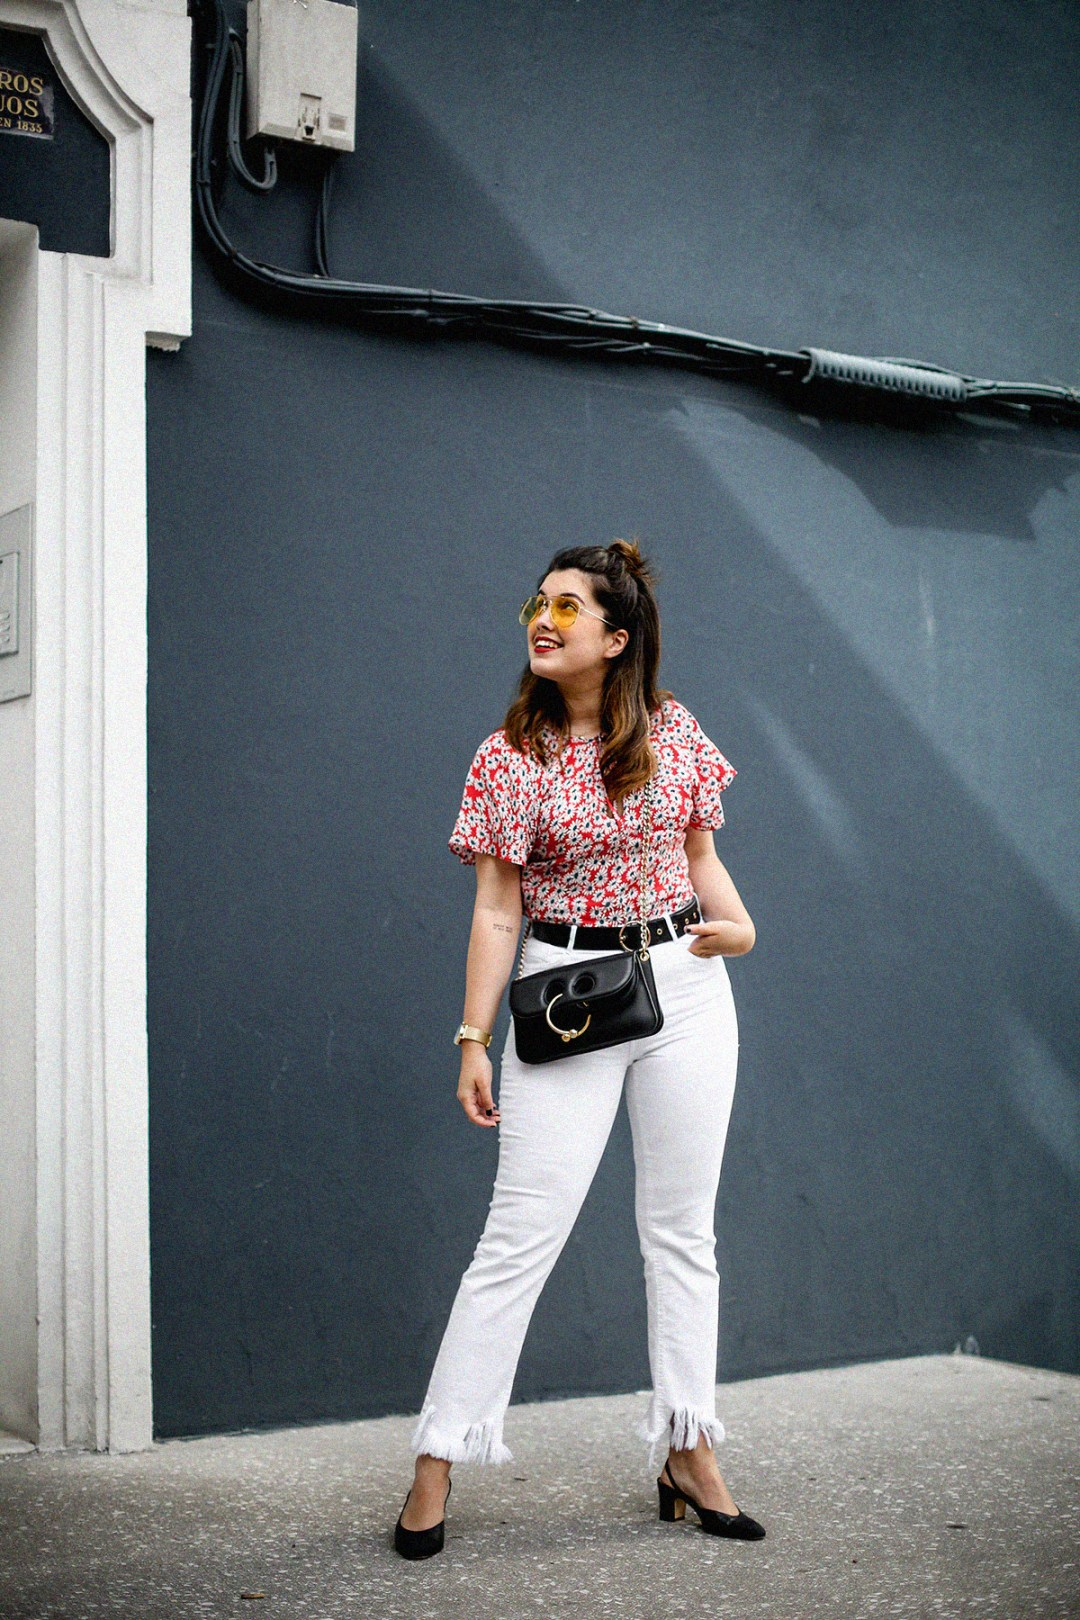 flower-top-zara-frayed-white-jeans-chanel-slingback-jw-anderson-bag-streetstyle14